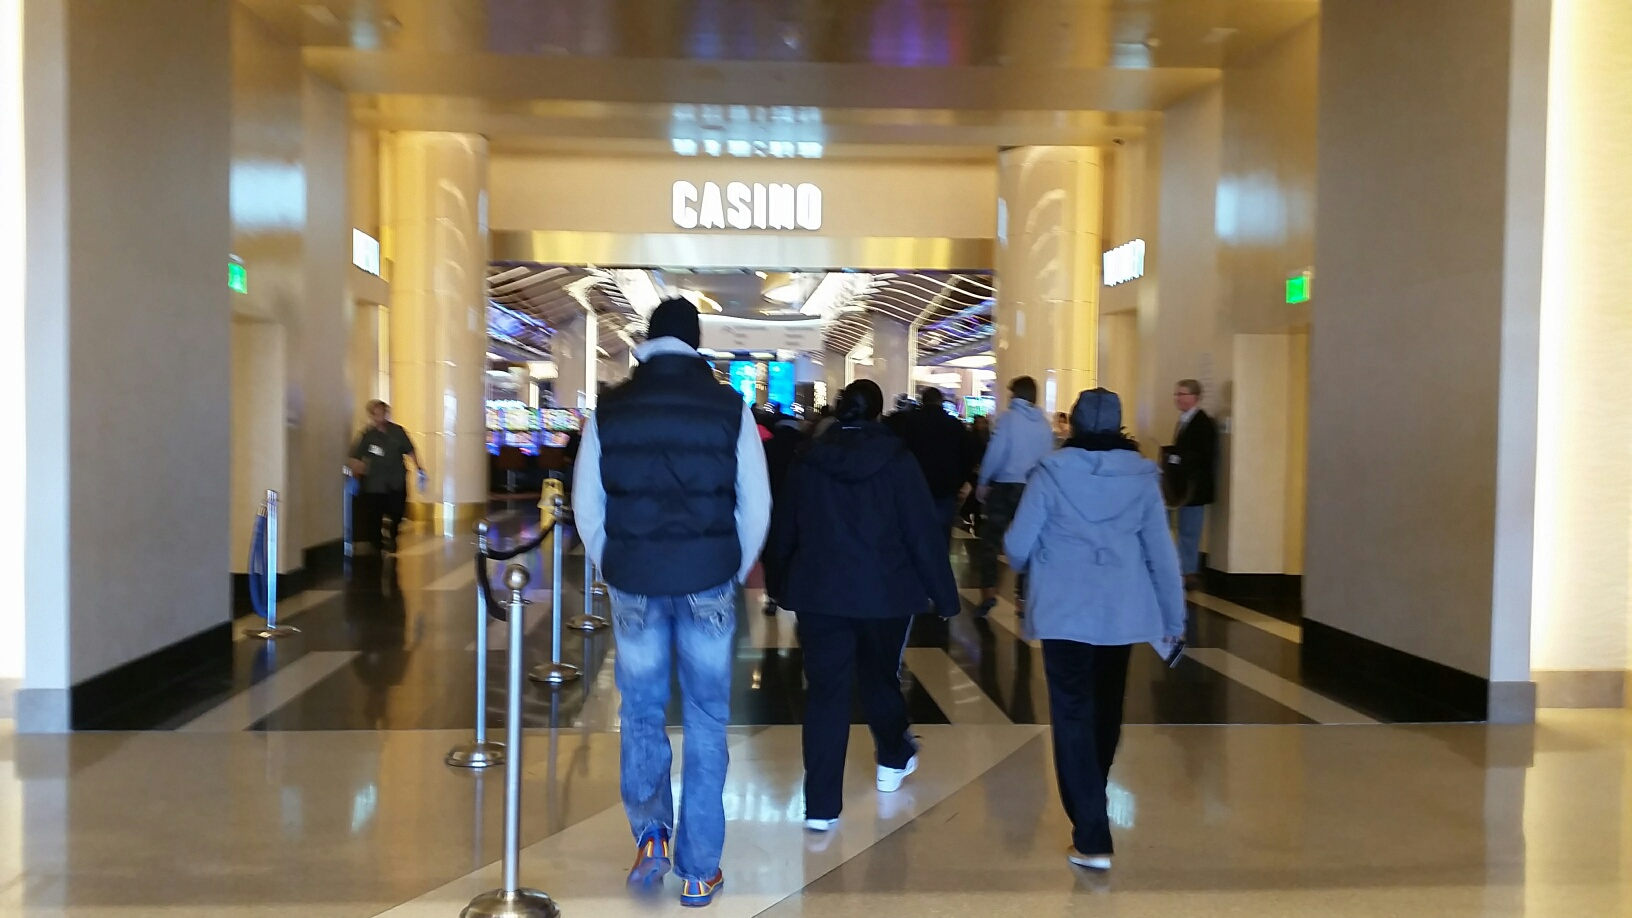 Guests continue to trickle into the casino area of the MGM National Harbor following Thursday's grand opening at 11 p.m. (WTOP/Kathy Stewart)